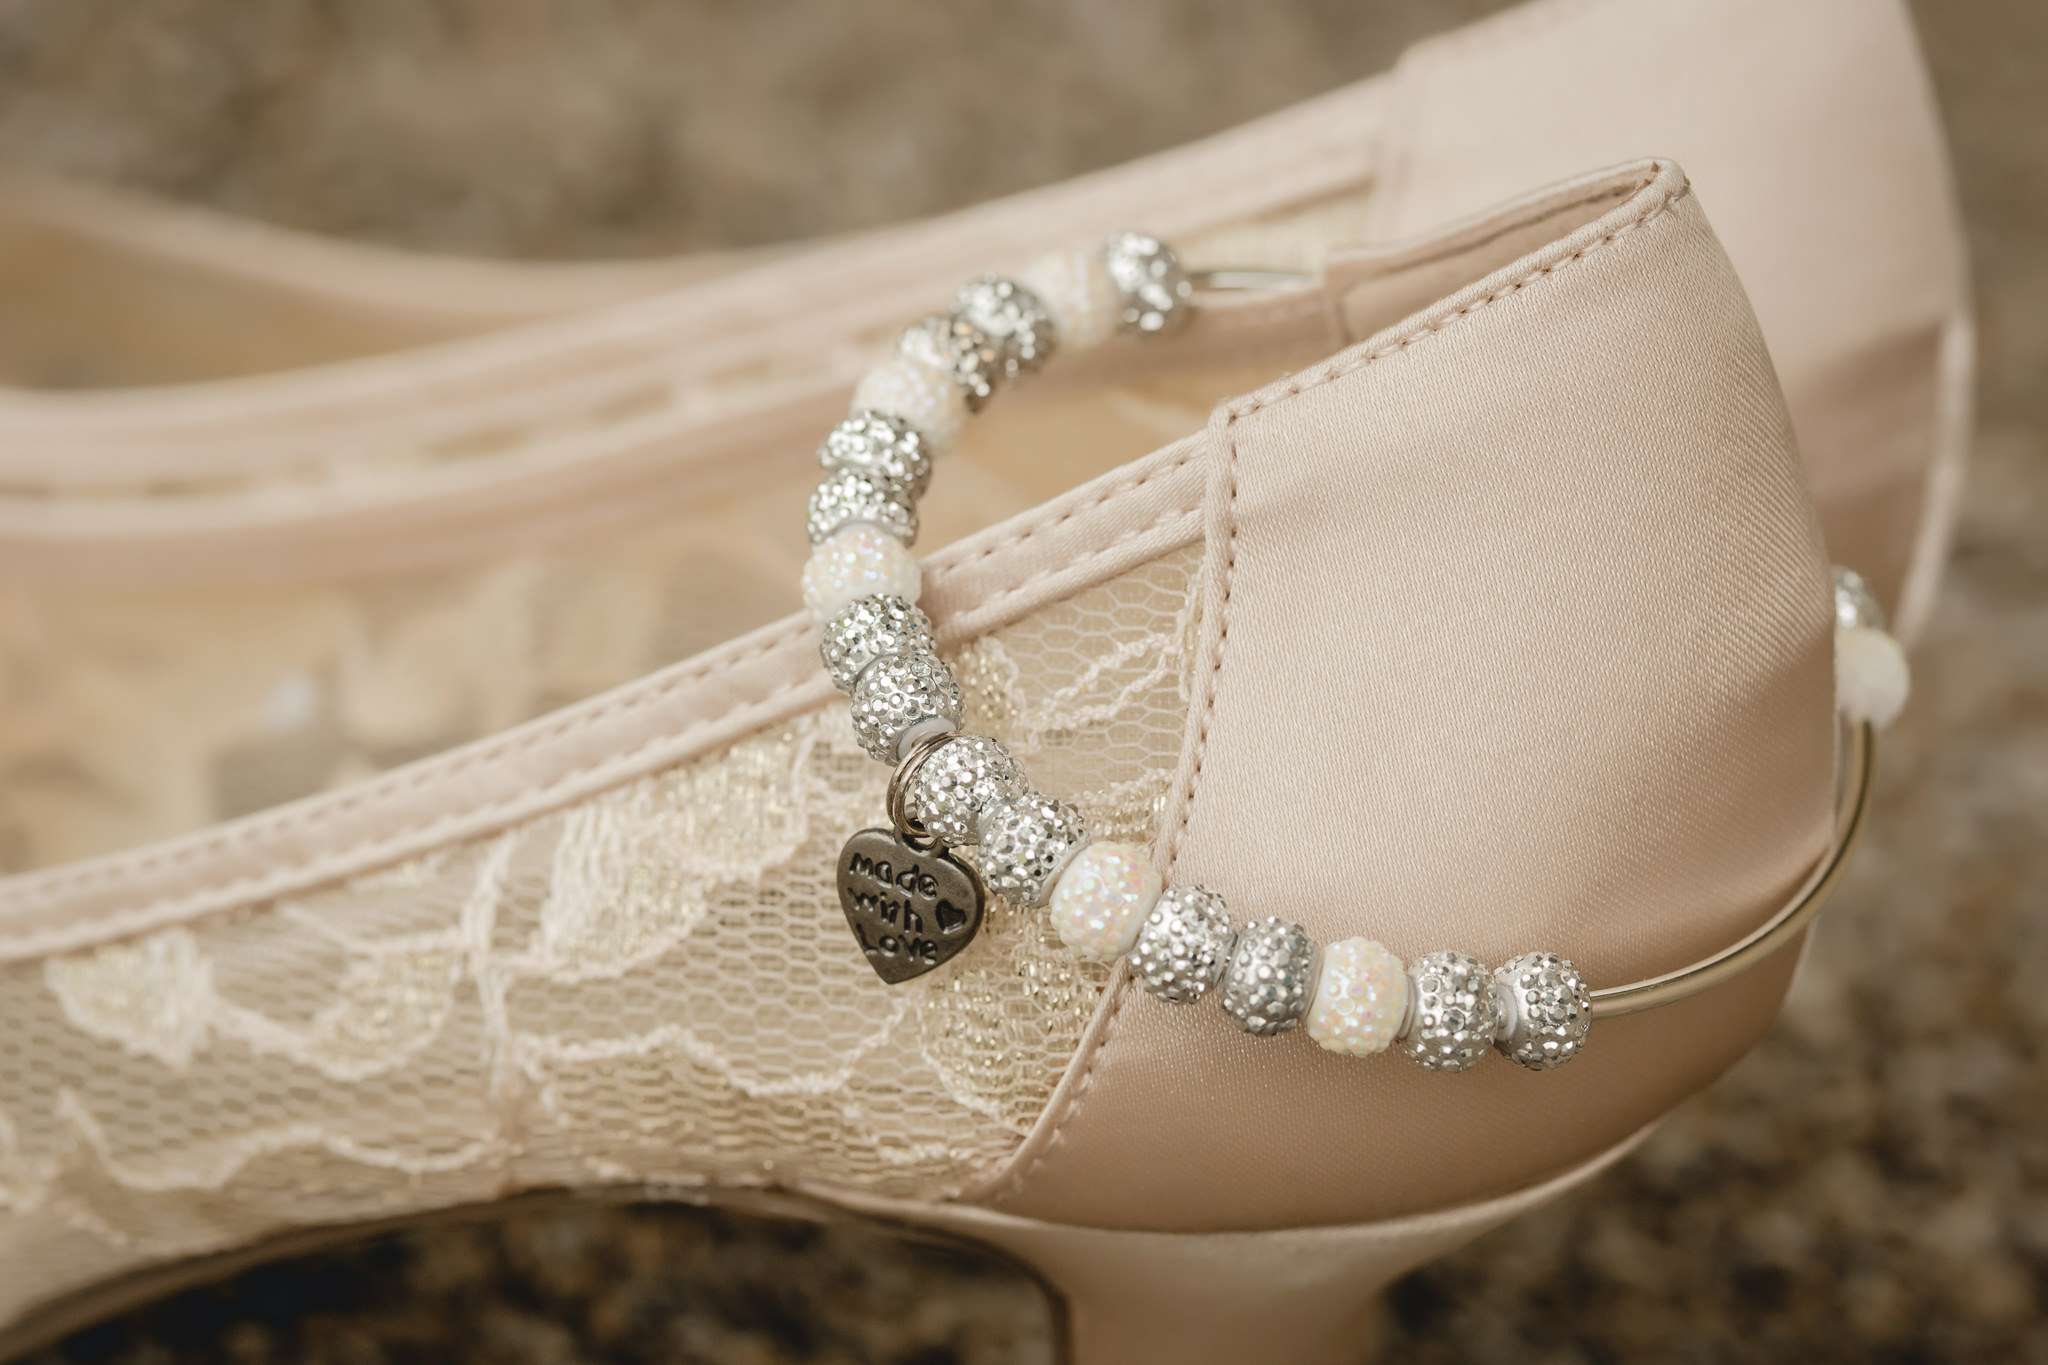 Personalized bracelet on wedding shoes at a spring wedding in Pittsburgh